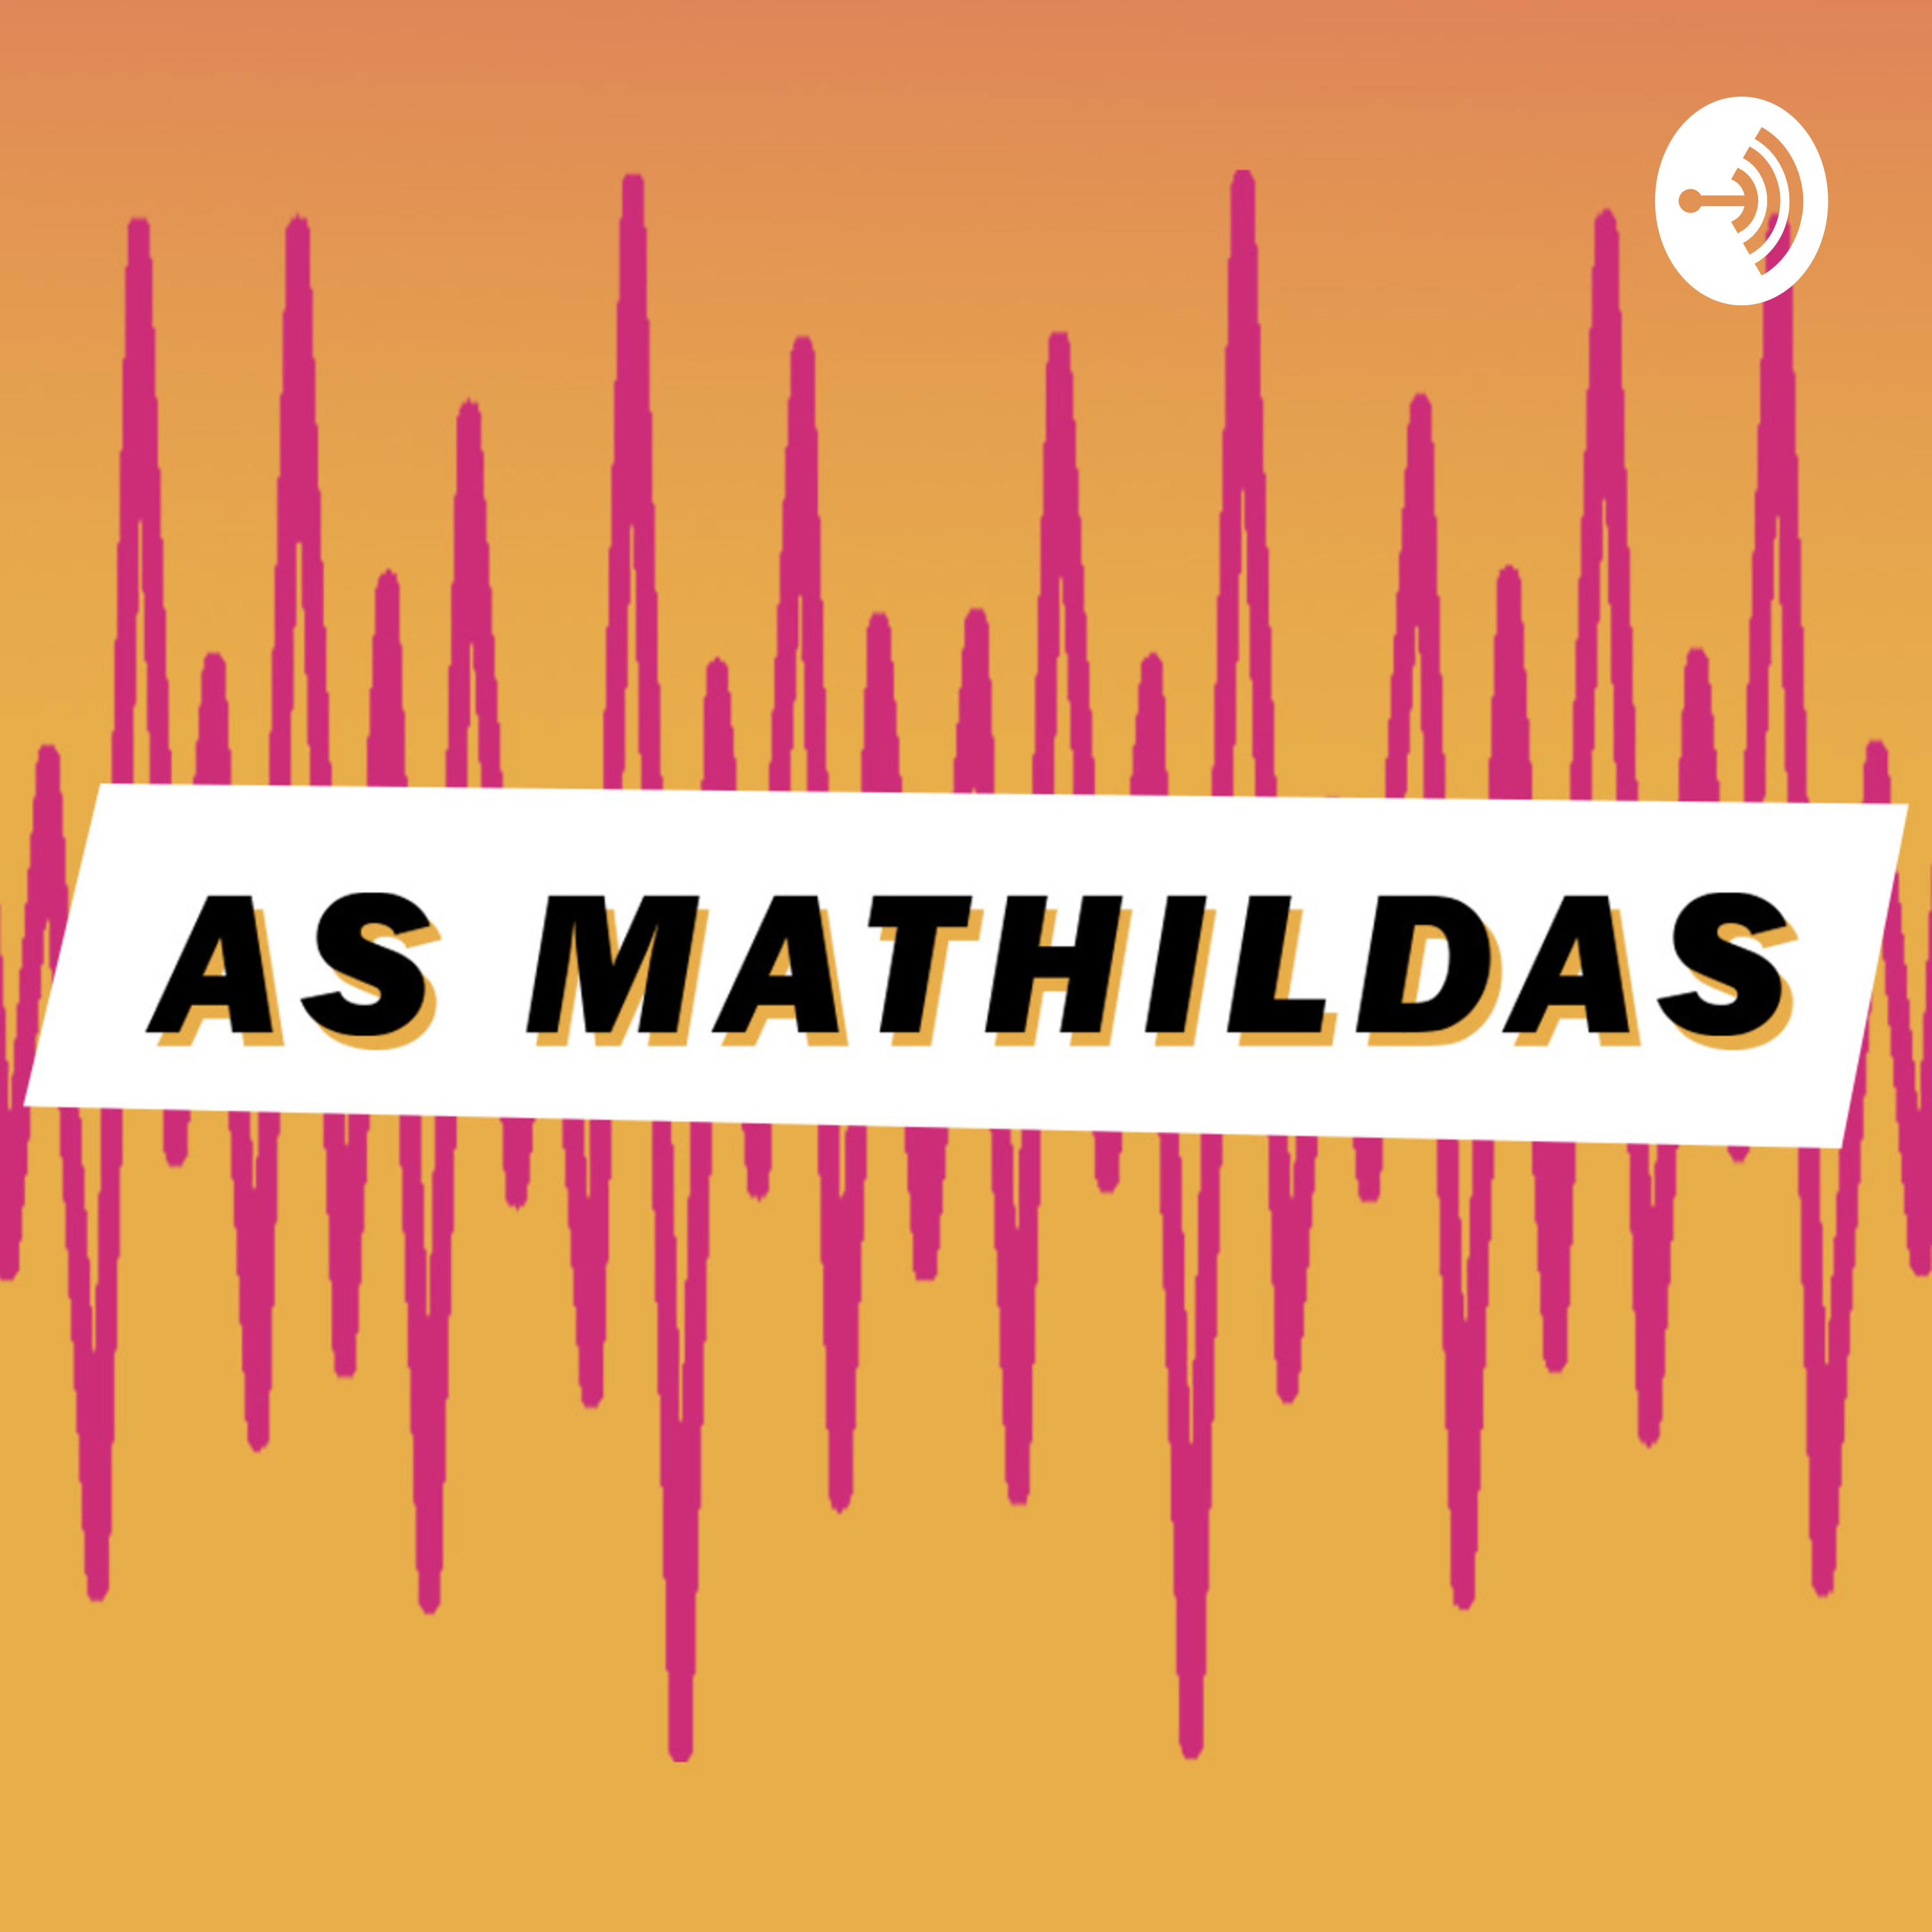 As Mathildas